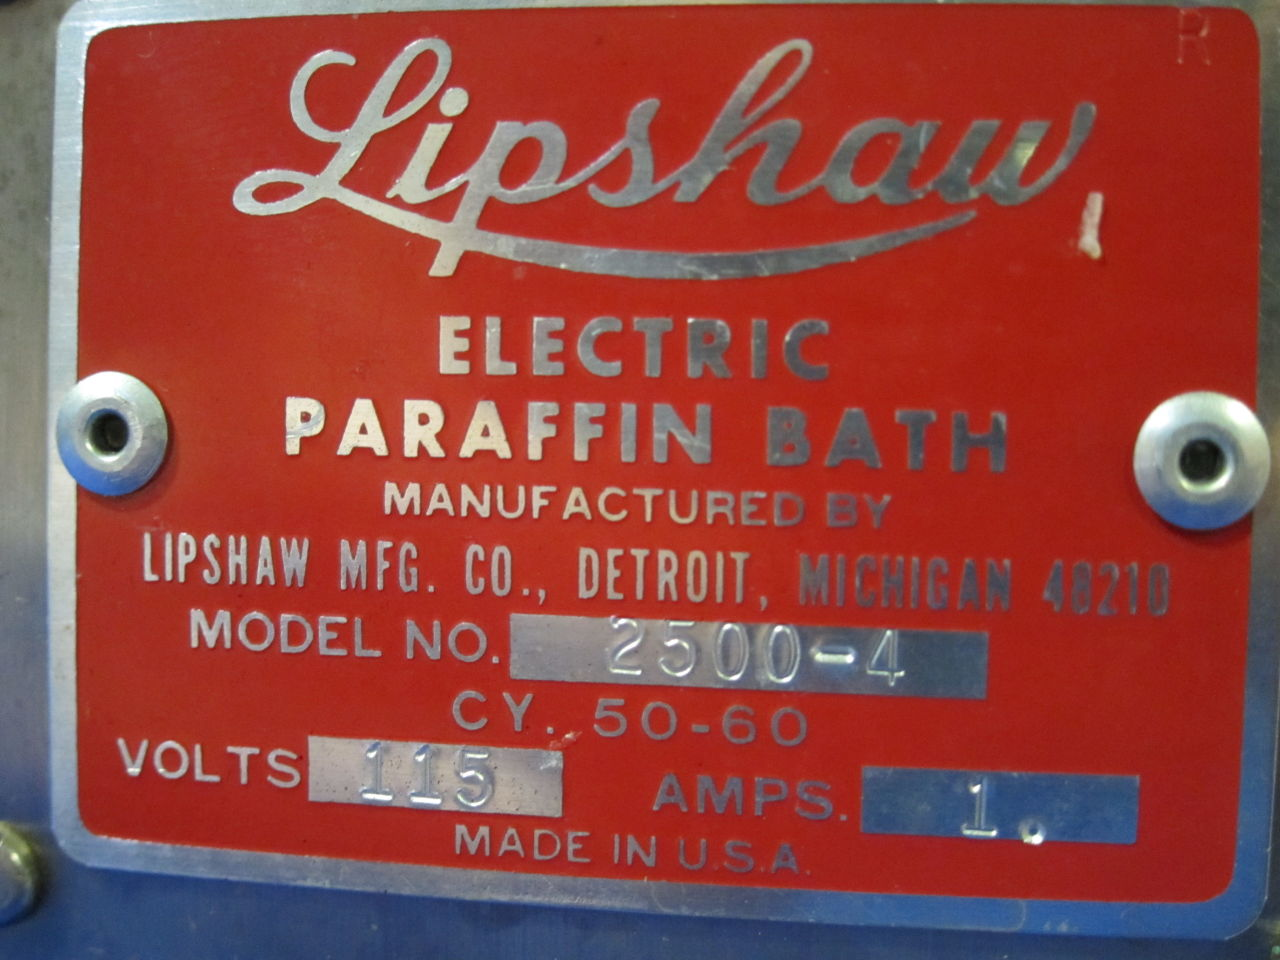 LIPSHAW 2500-4  - Lot of 2 Paraffin Bath